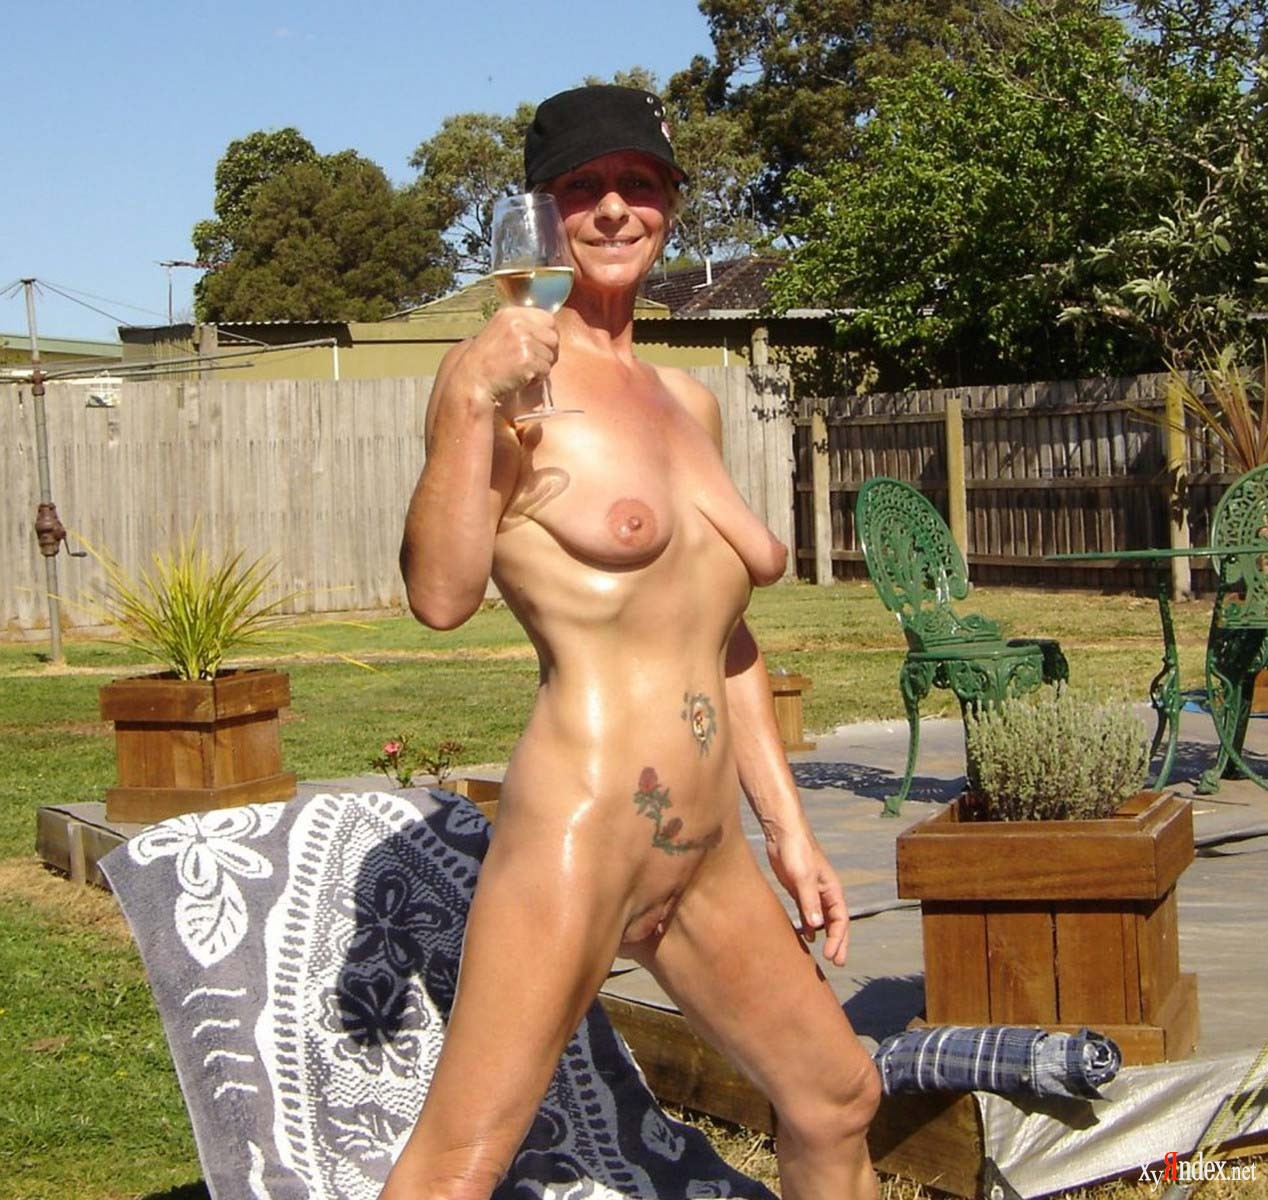 Women nude in the backyard, fucked spread eagle from behind